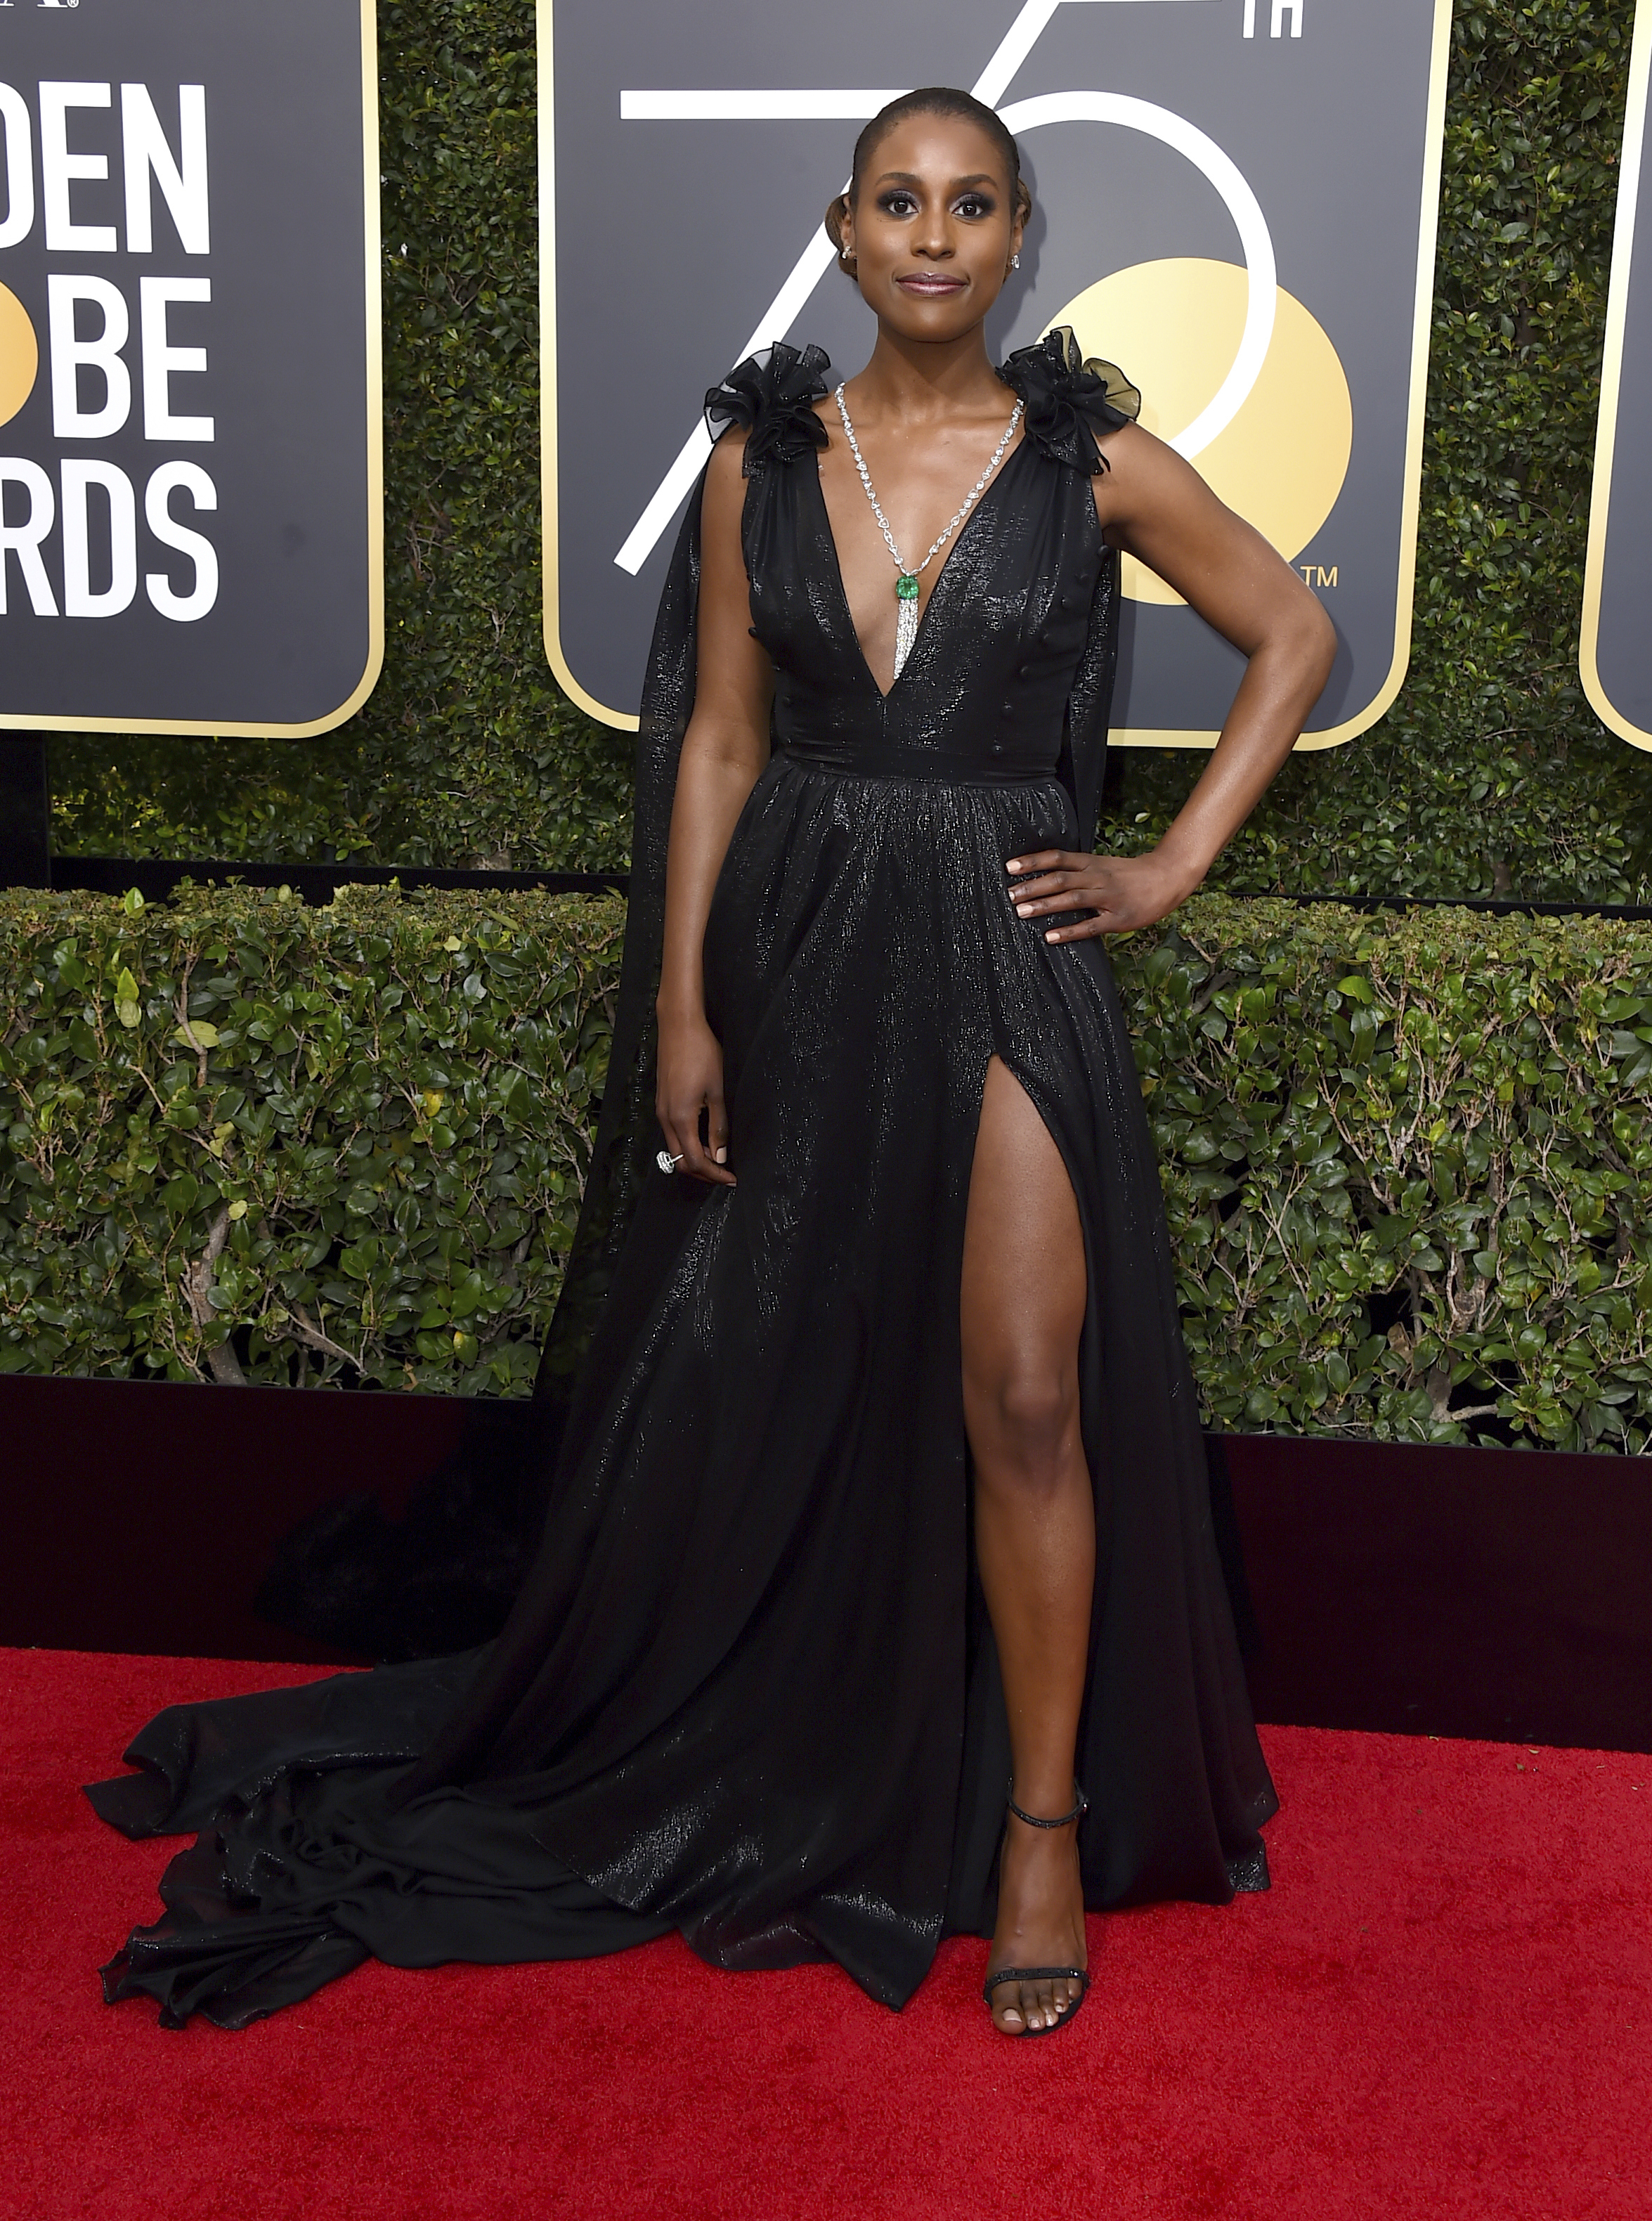 <div class='meta'><div class='origin-logo' data-origin='AP'></div><span class='caption-text' data-credit='Jordan Strauss/Invision/AP'>Issa Rae arrives at the 75th annual Golden Globe Awards at the Beverly Hilton Hotel on Sunday, Jan. 7, 2018, in Beverly Hills, Calif.</span></div>